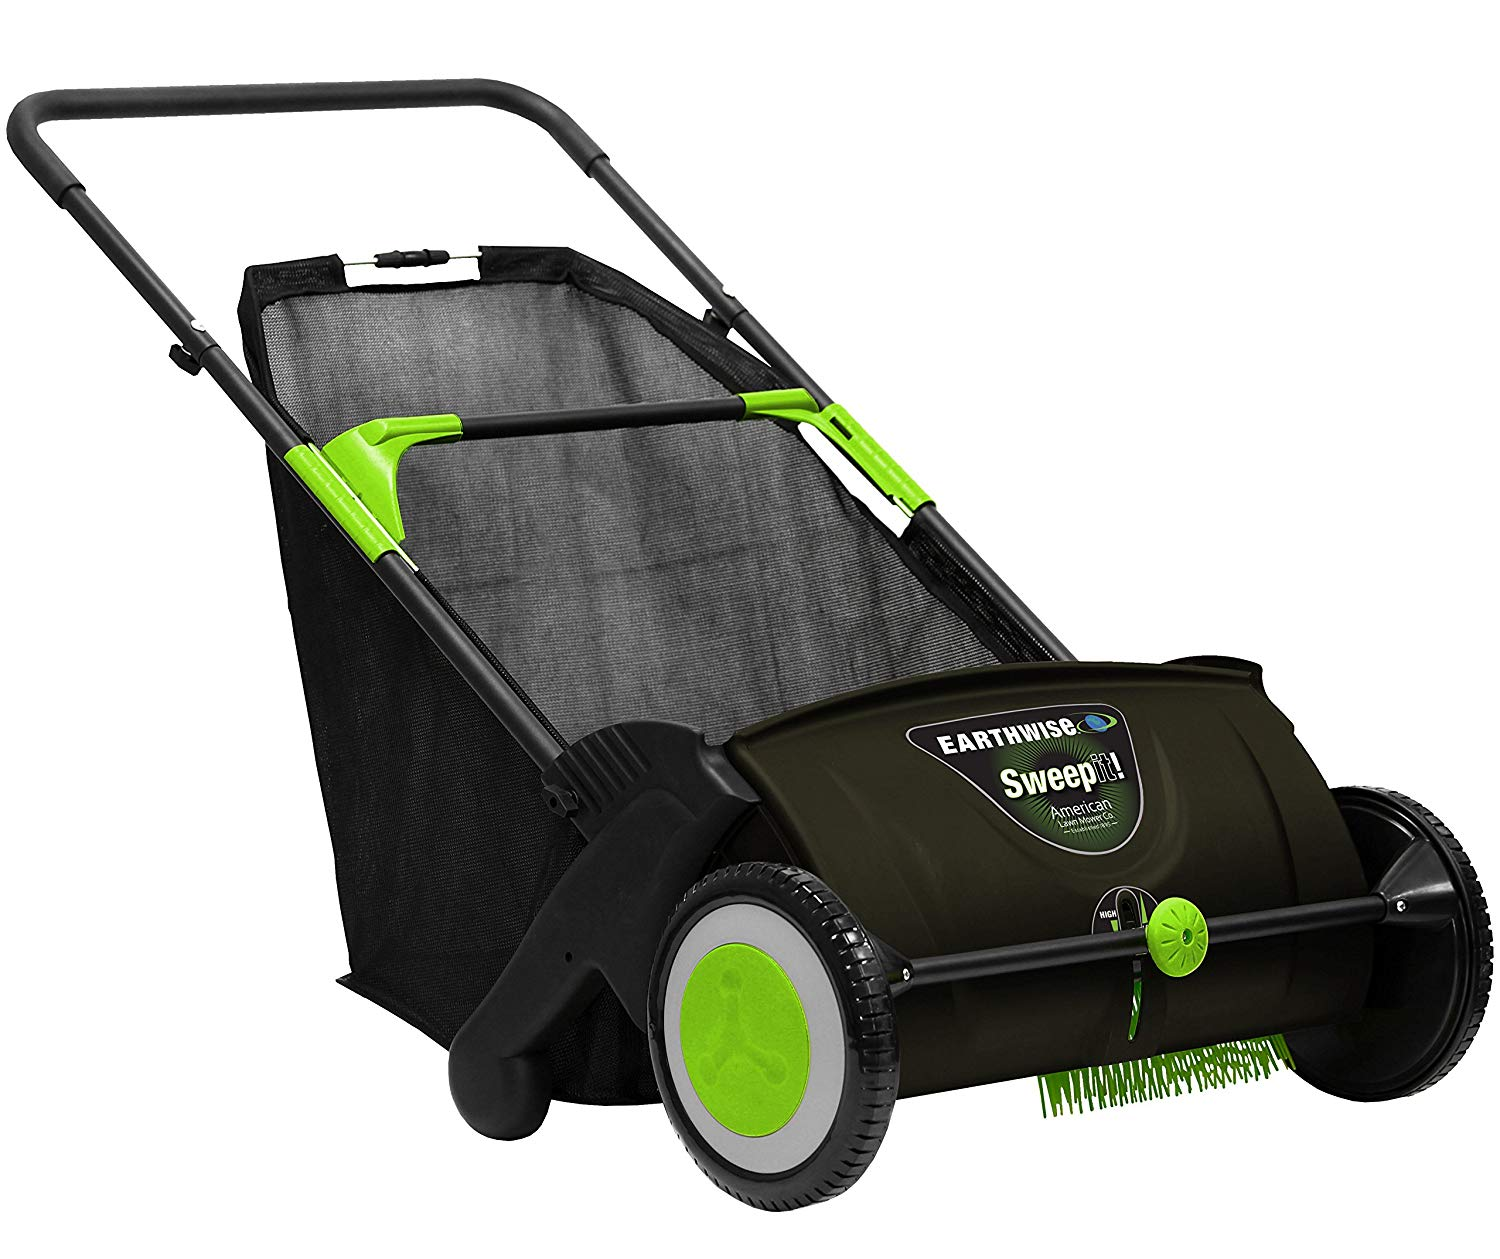 Earthwise LSW70021 Sweep It Lawn Sweeper